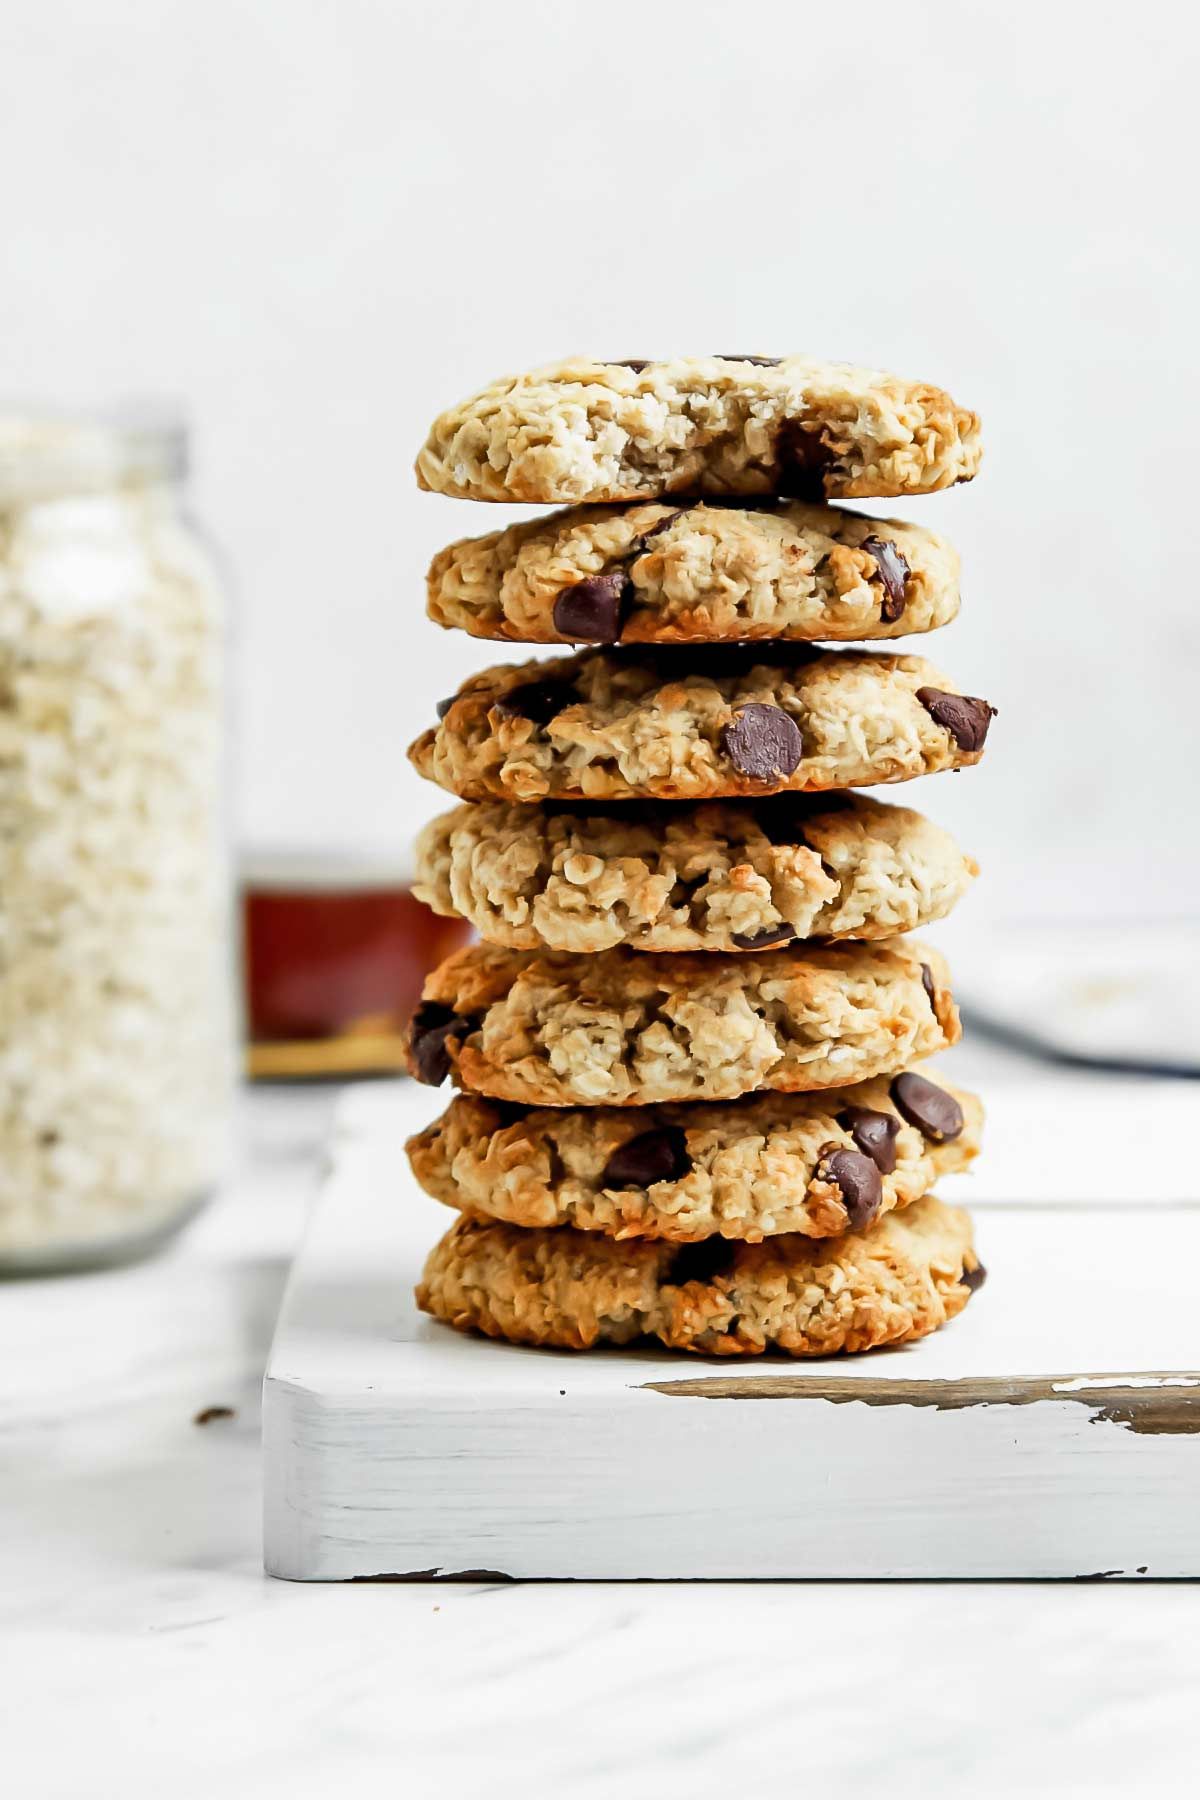 Healthy oatmeal cookie stack on white cutting board